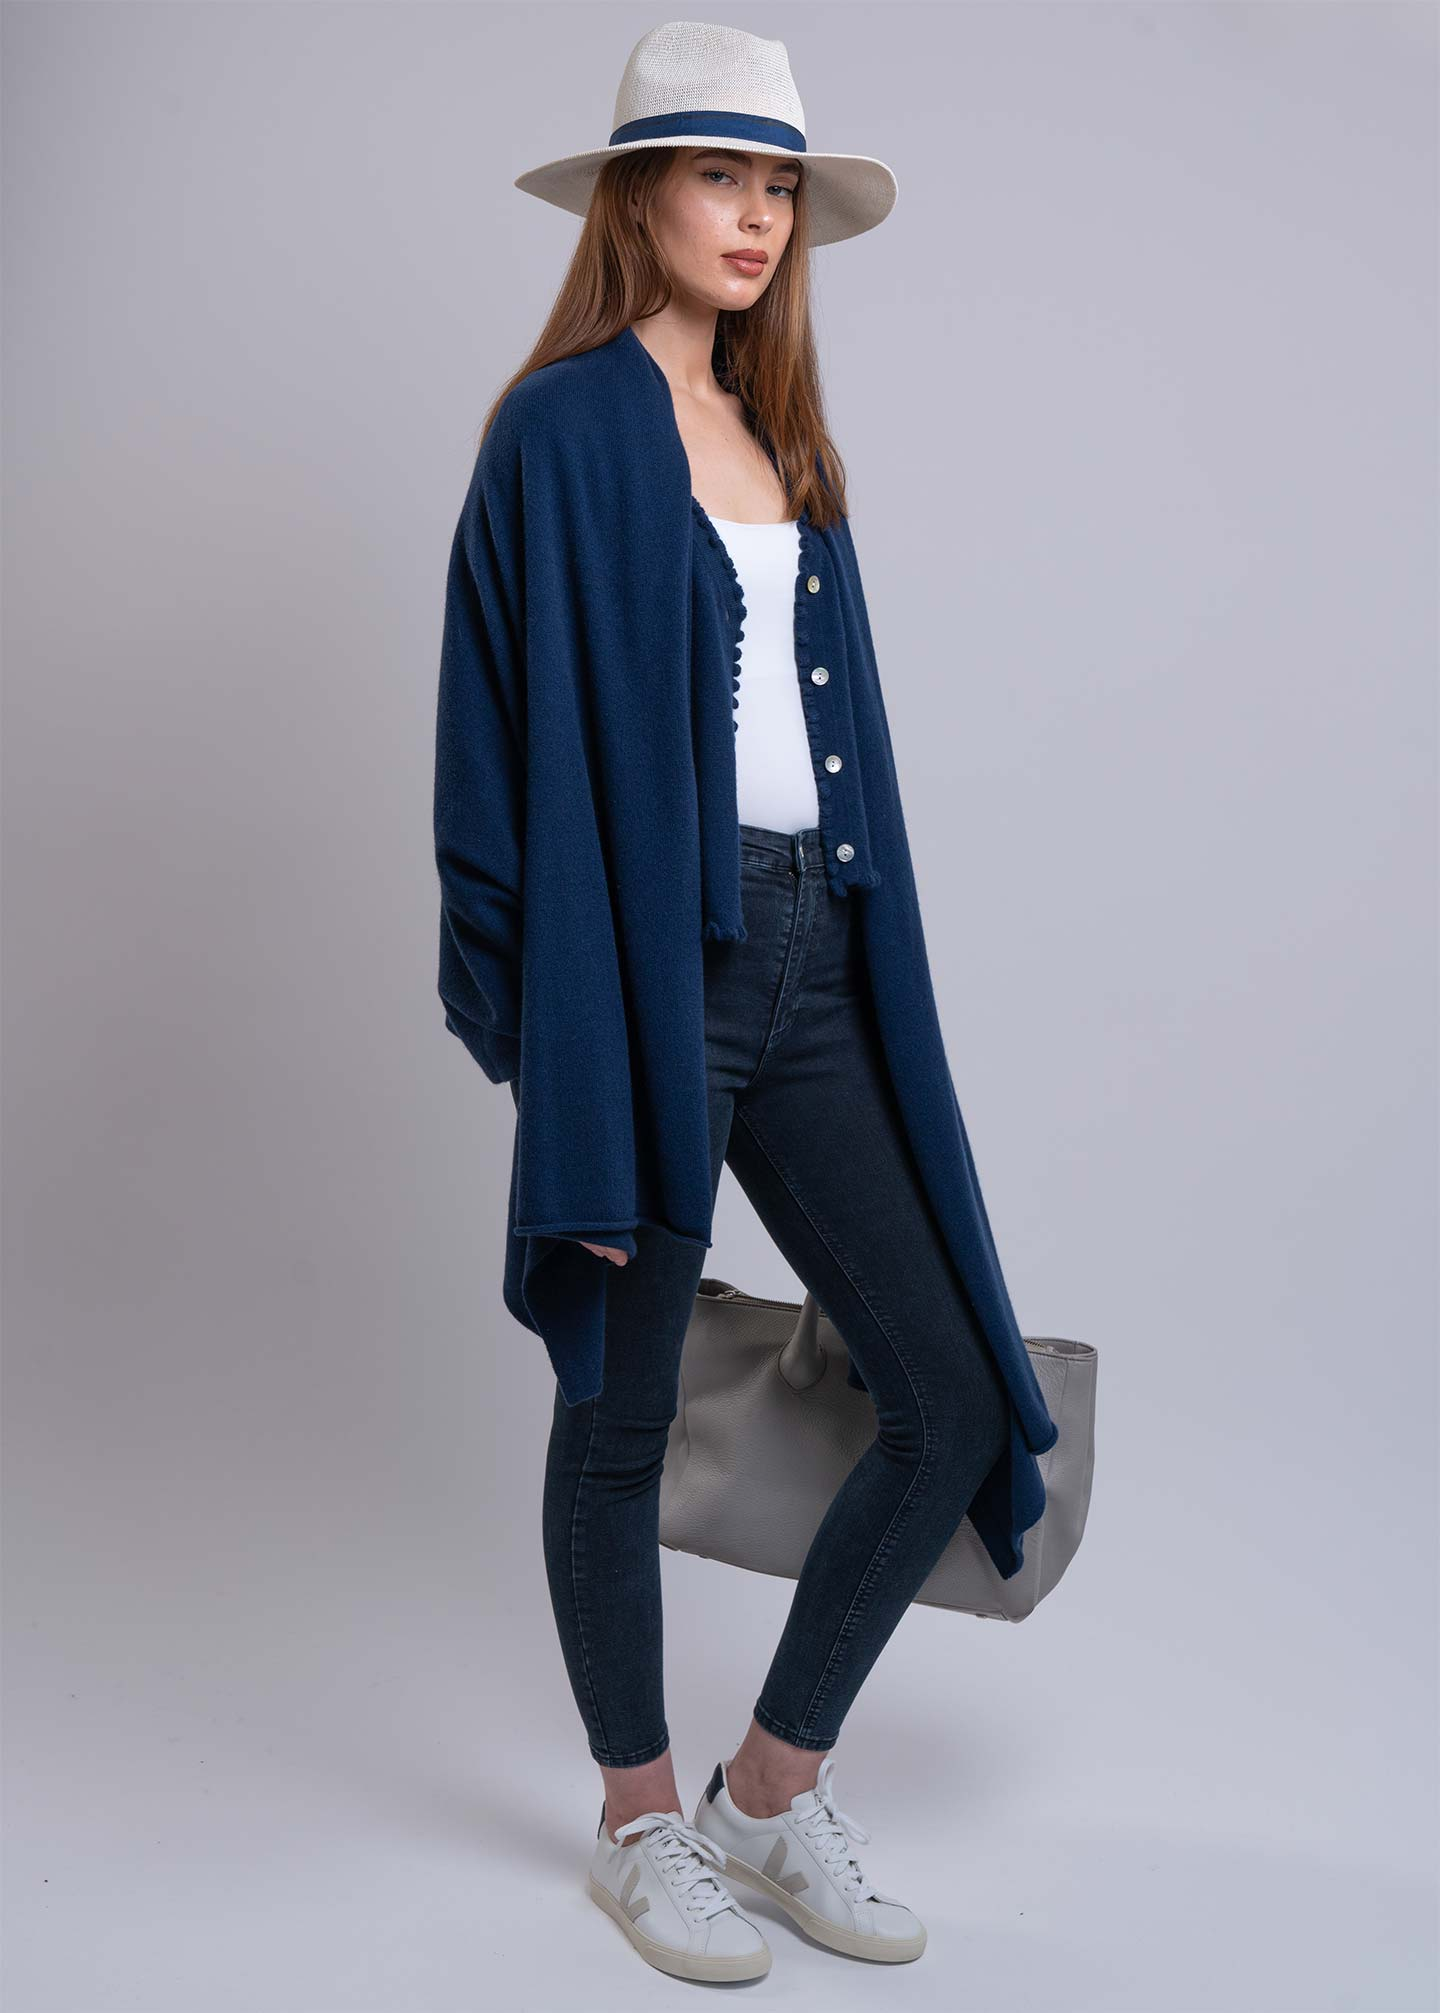 navy cashmere cardigan and cashmere travel wrap